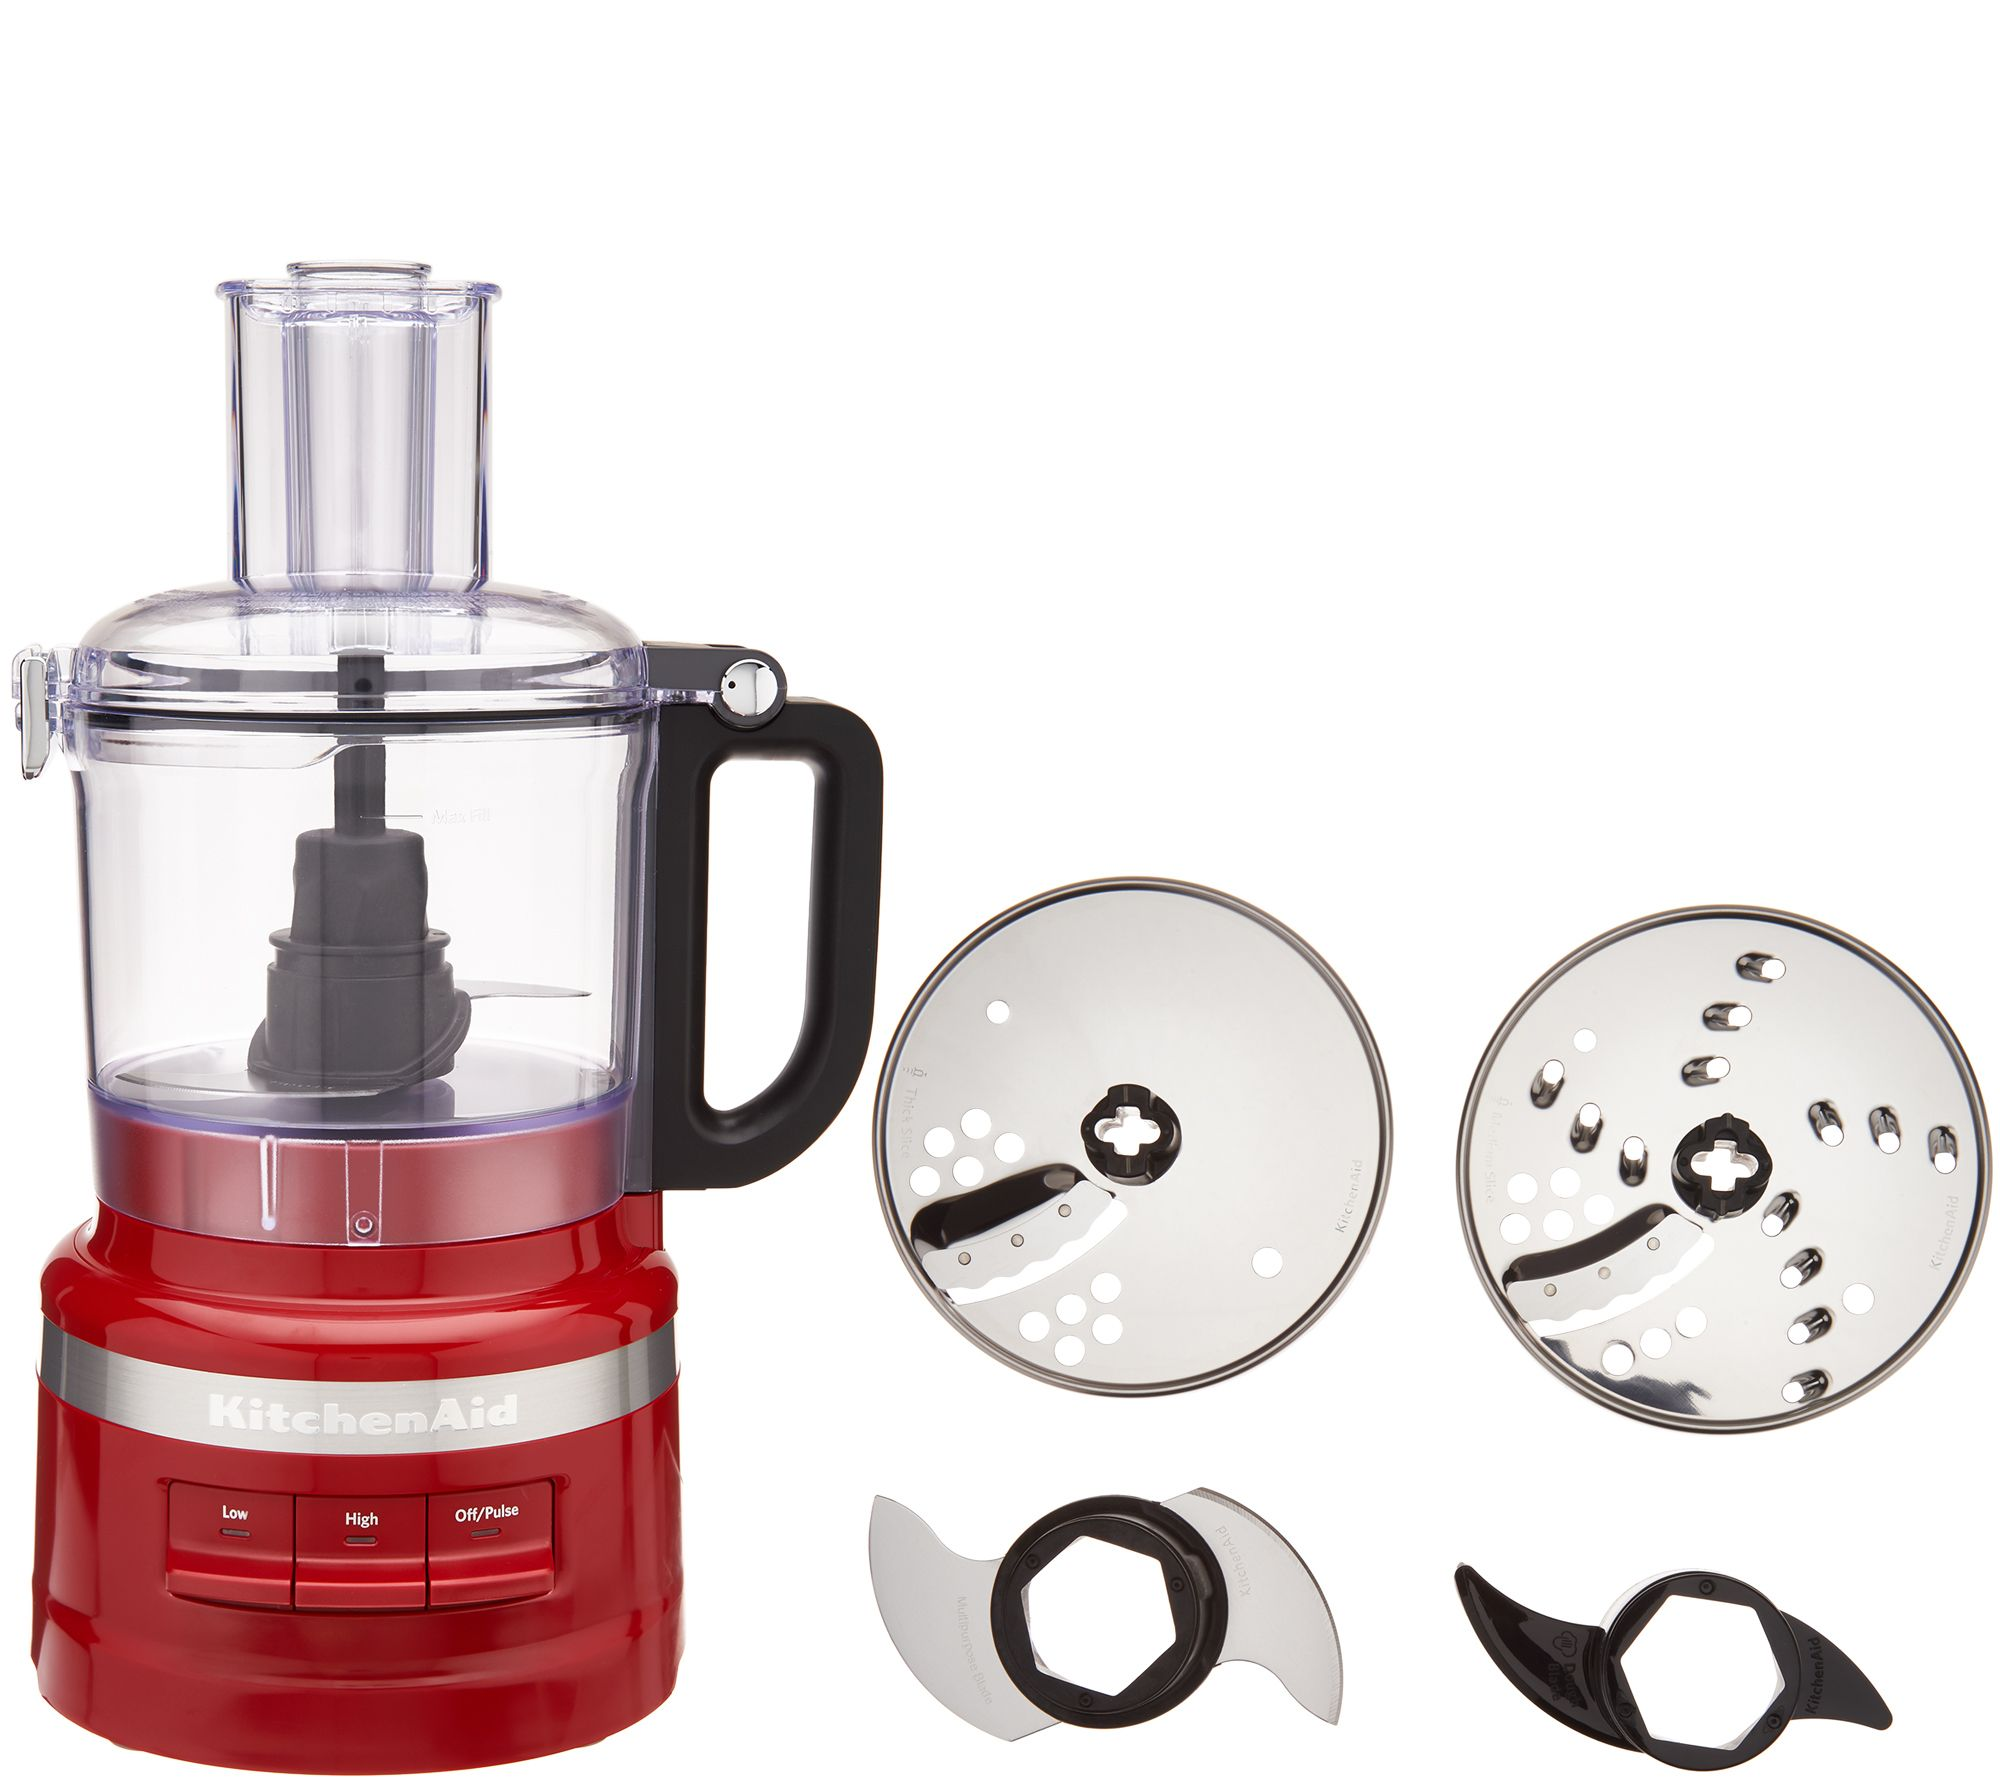 Kitchenaid 7 Cup Food Processor Plus With In Unit Blade Storage Qvc Com